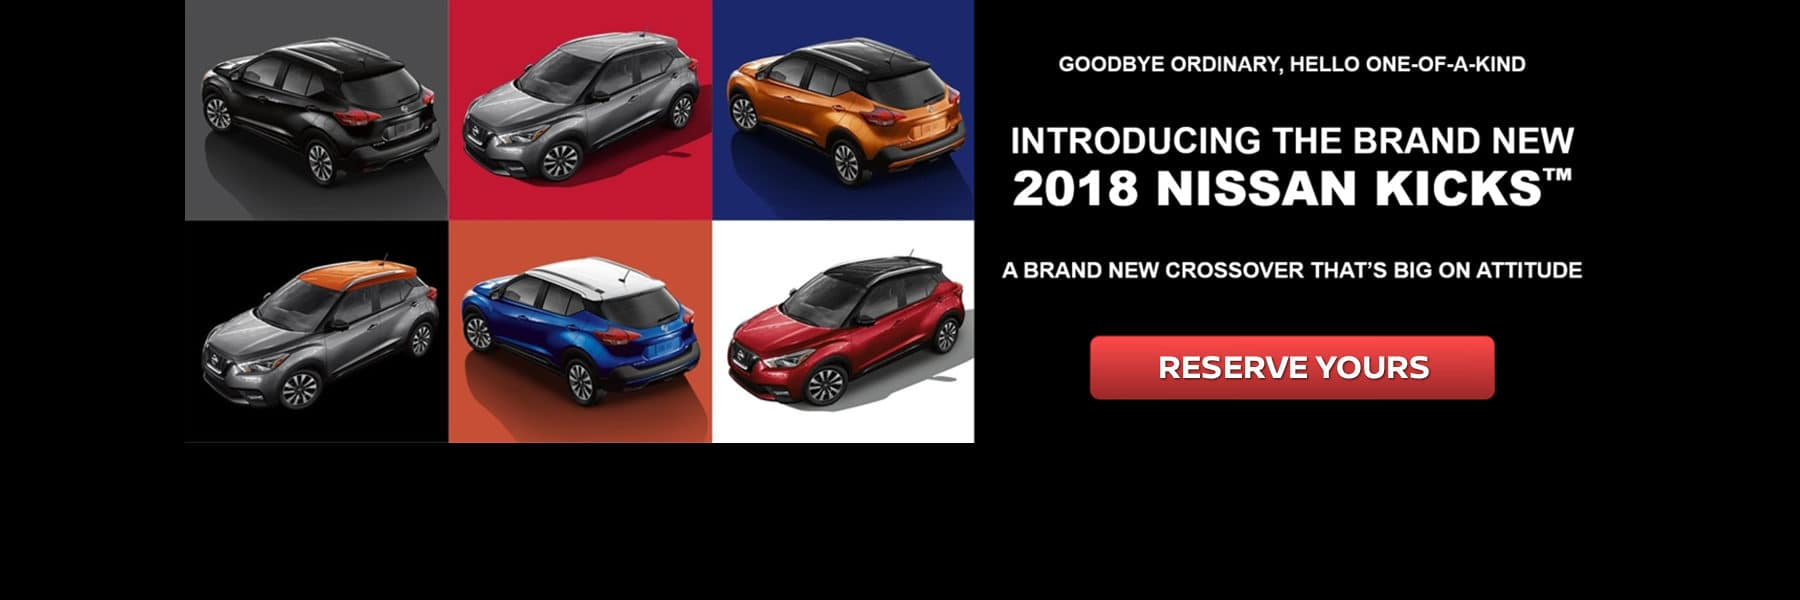 Introducing the 2018 Nissan Kicks! Reserve yours today at Berman Nissan of Chicago!